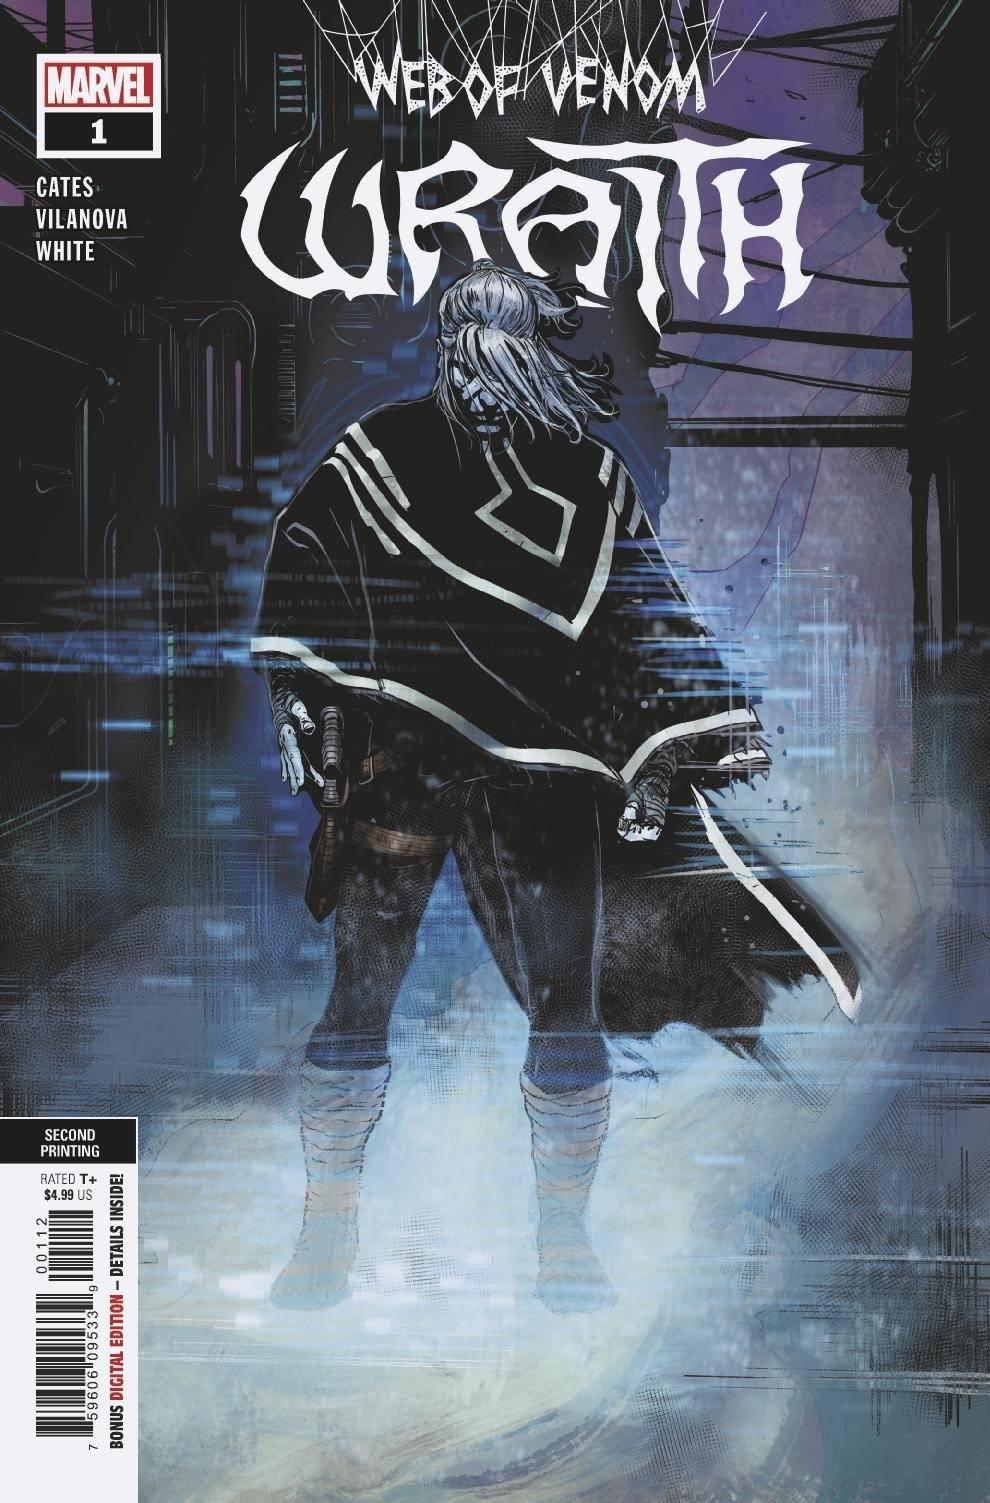 Web of Venom Wraith #1 2nd Print (2020)